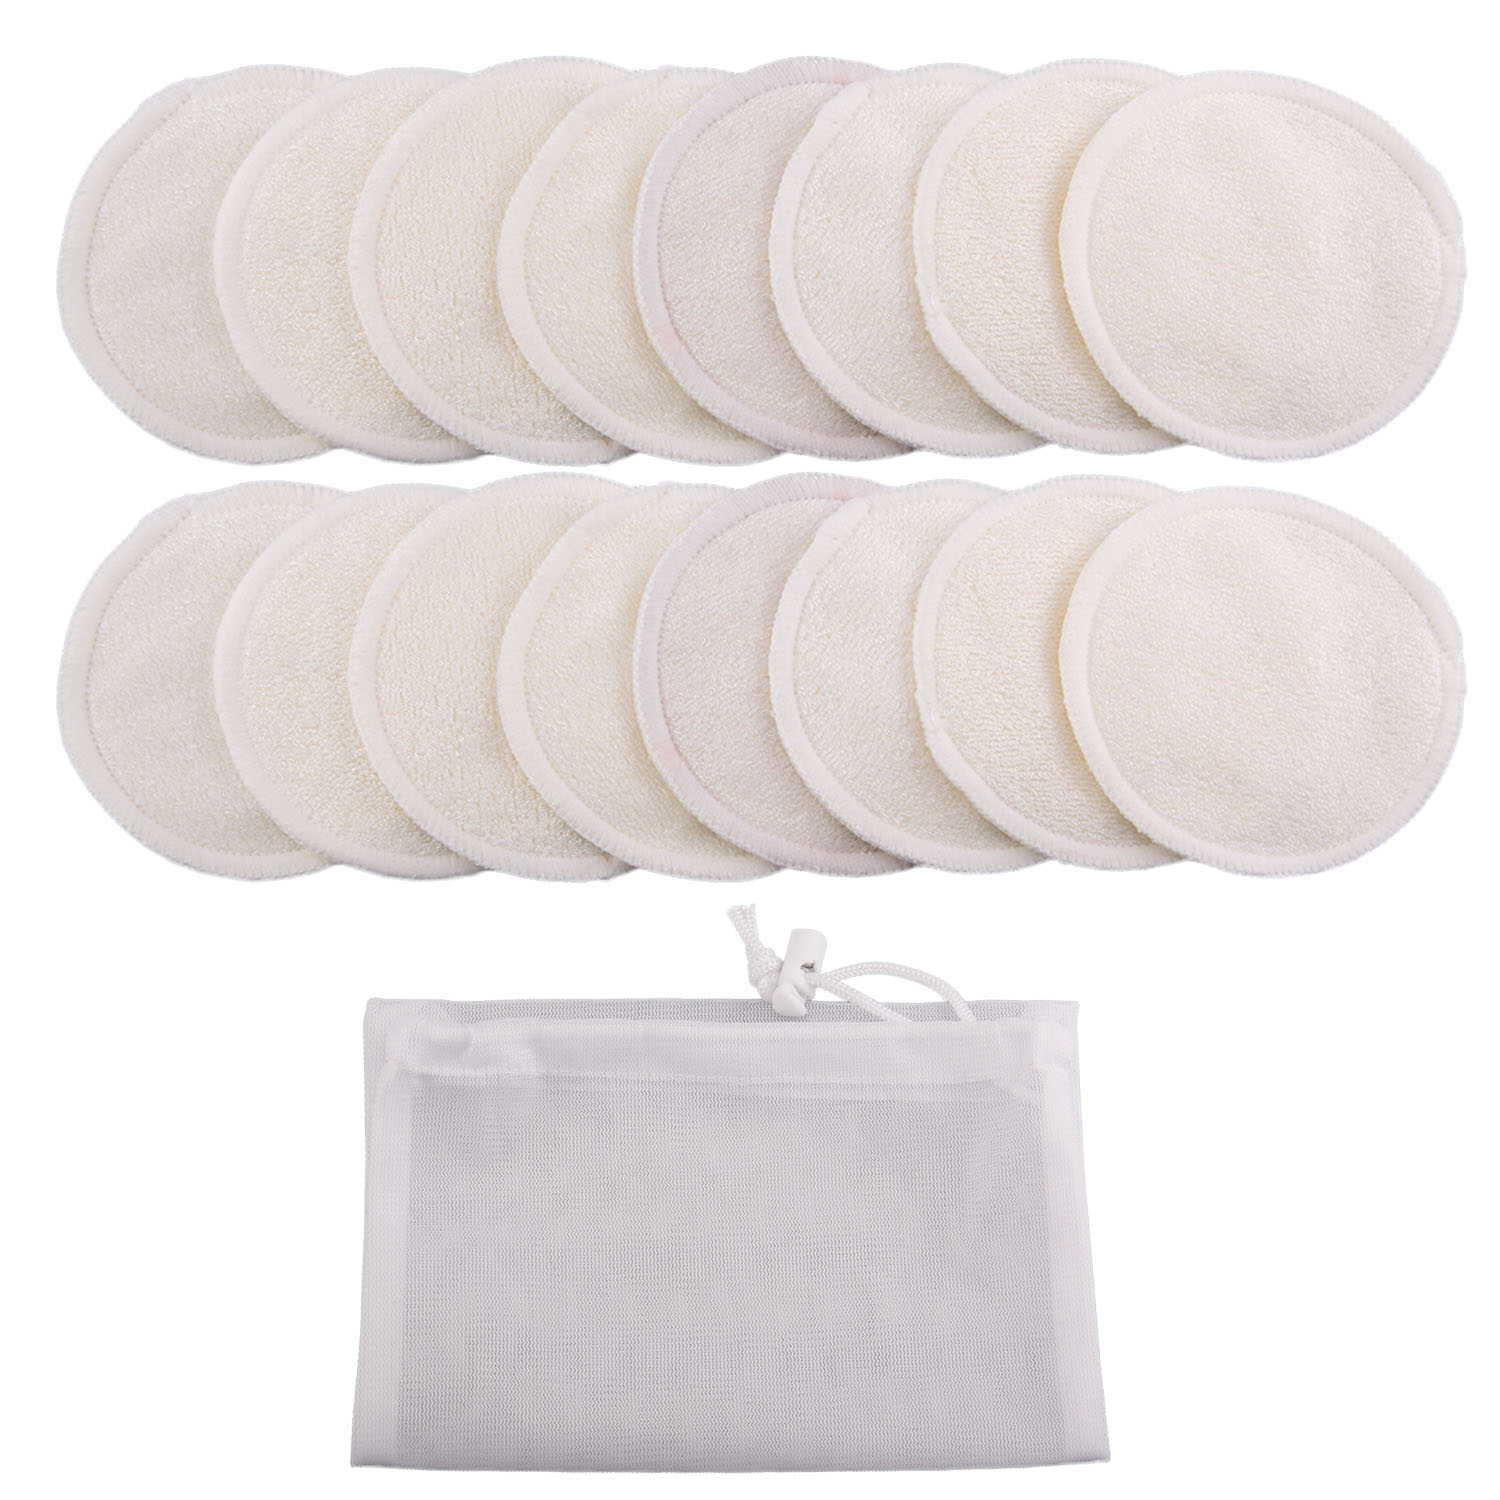 16Pcs/set Reusable Cotton Makeup Remover Pads With Bag 3.15 Inch Washable Eyeshow Nail Art Remover Pad Face Cleaning Cotton Pads